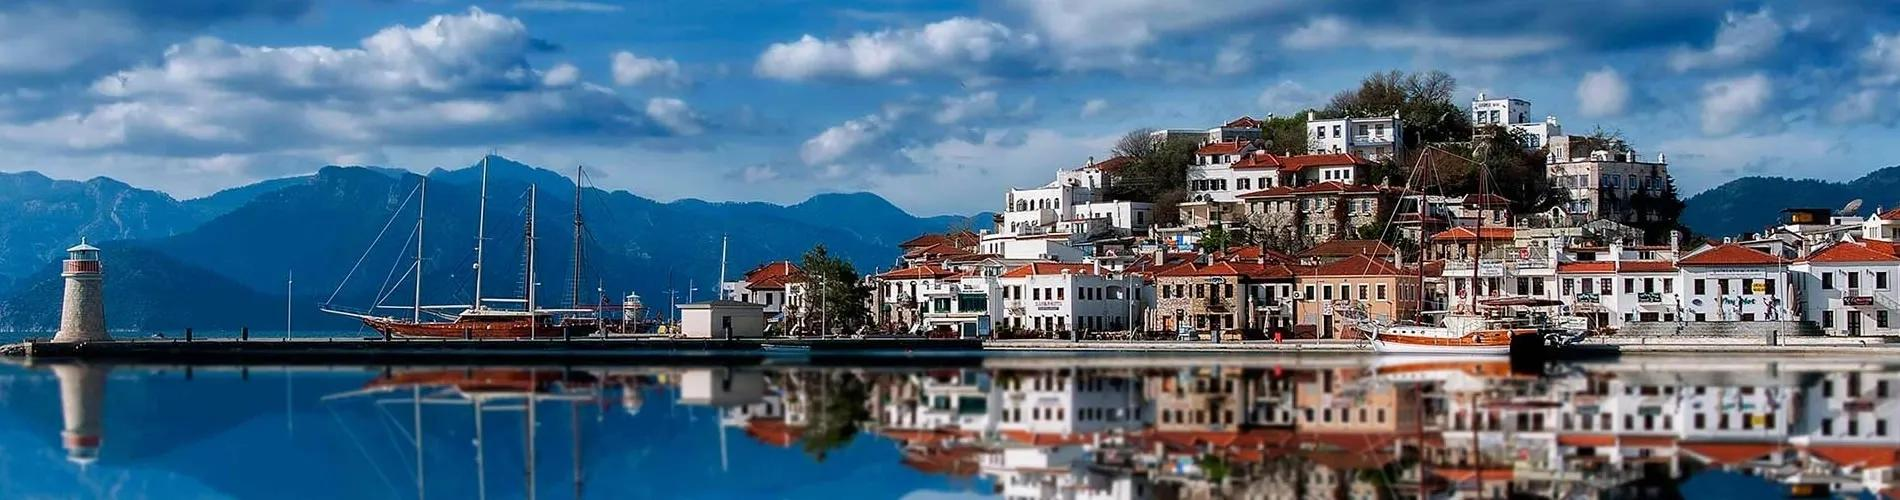 About Marmaris, Marmaris Photos